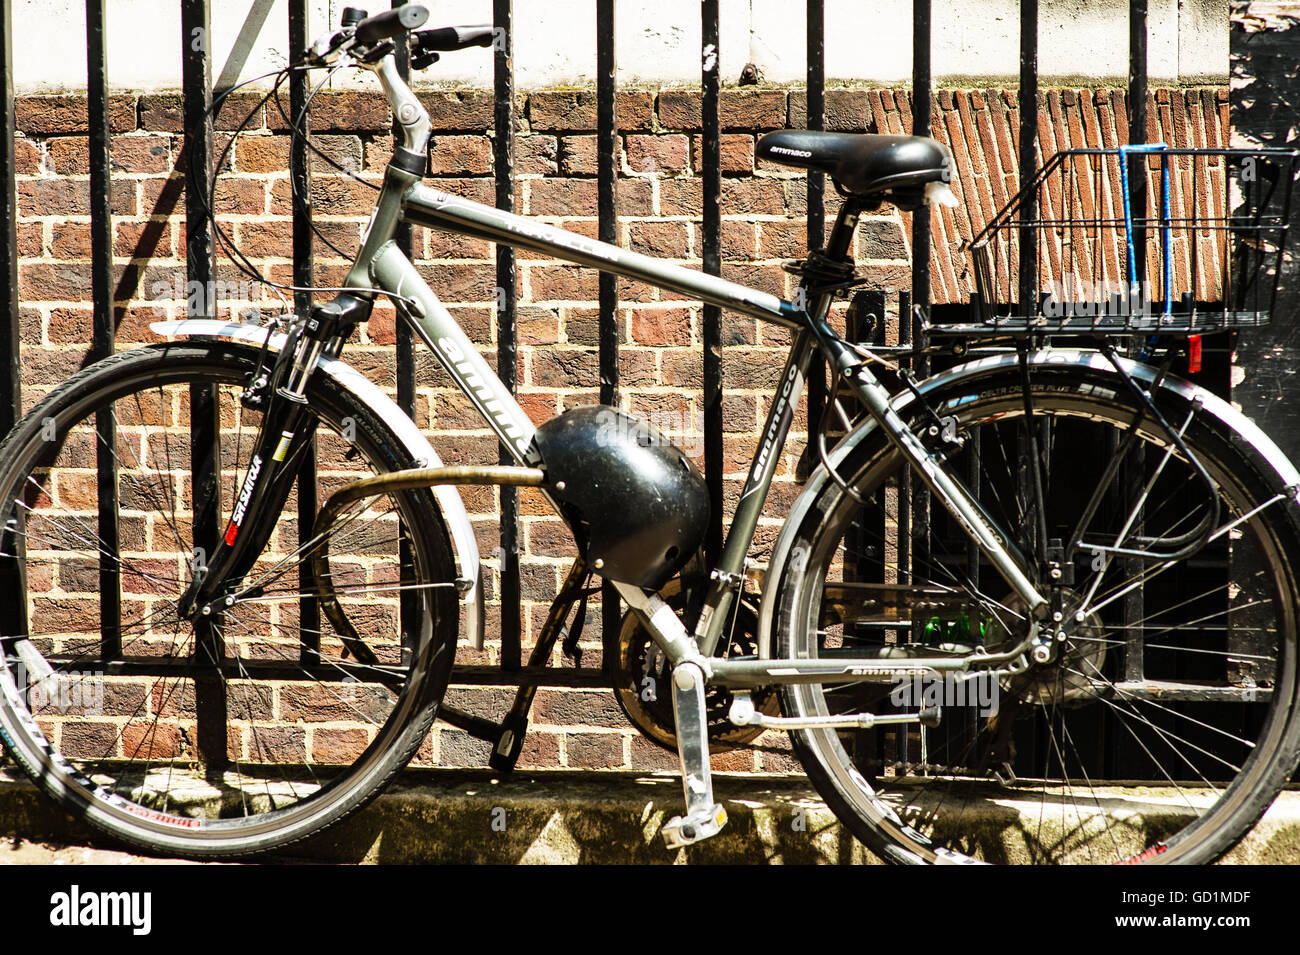 Image of a Bicycle Secured To An Iron Or Steel Railing Fence In London - Stock Image